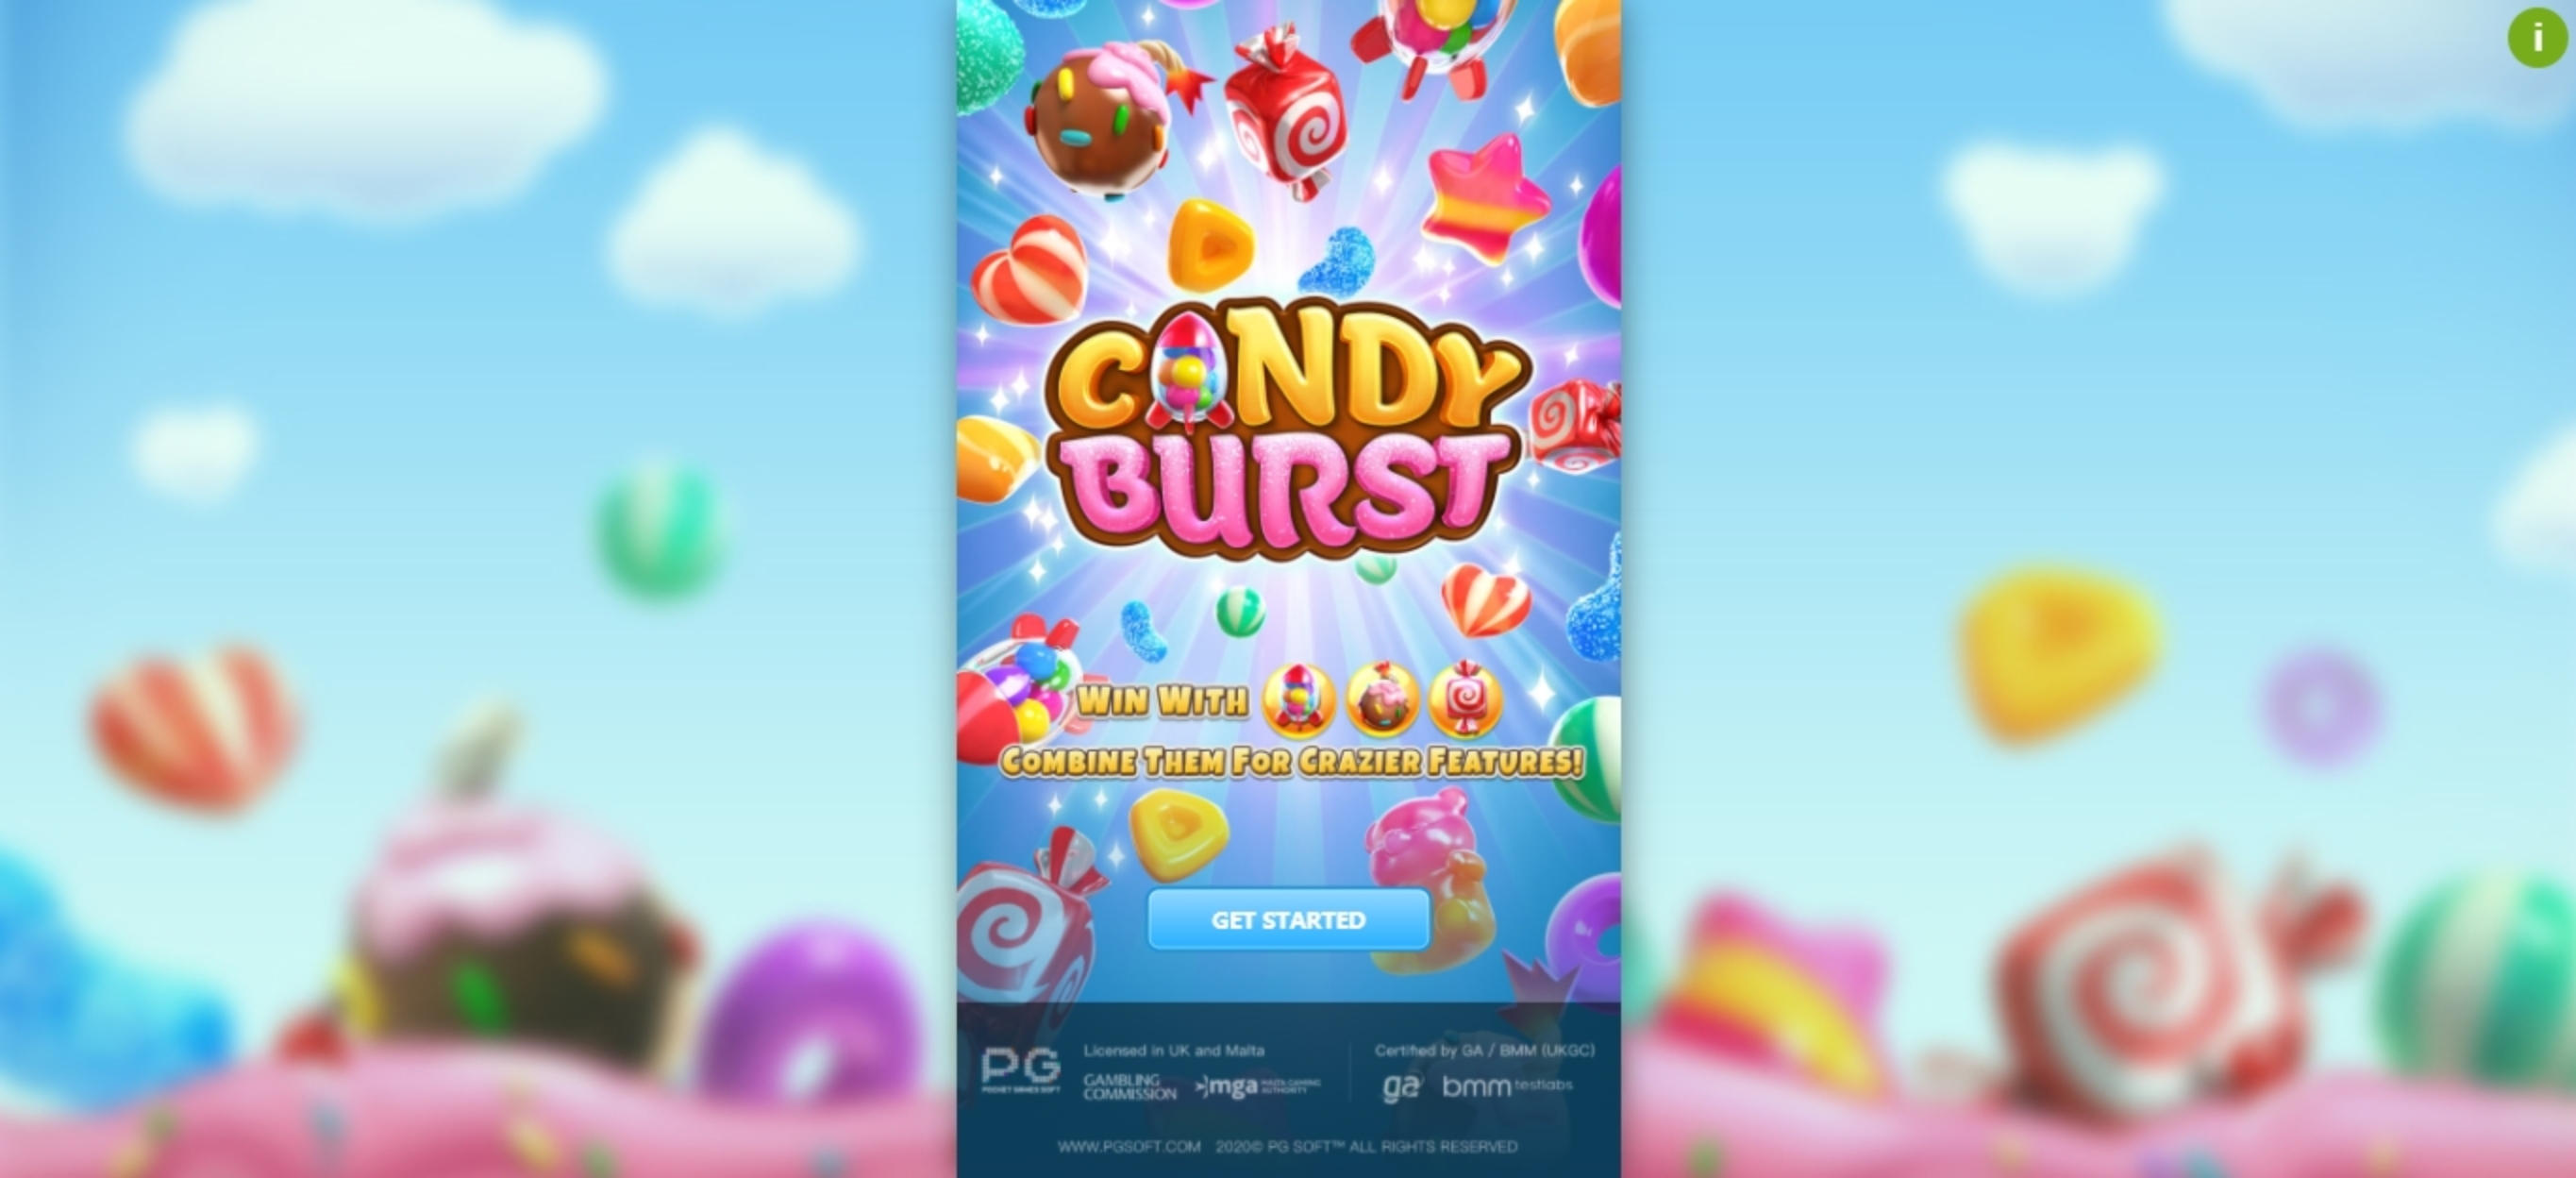 Play Candy Burst (PG Soft) Free Casino Slot Game by PG Soft